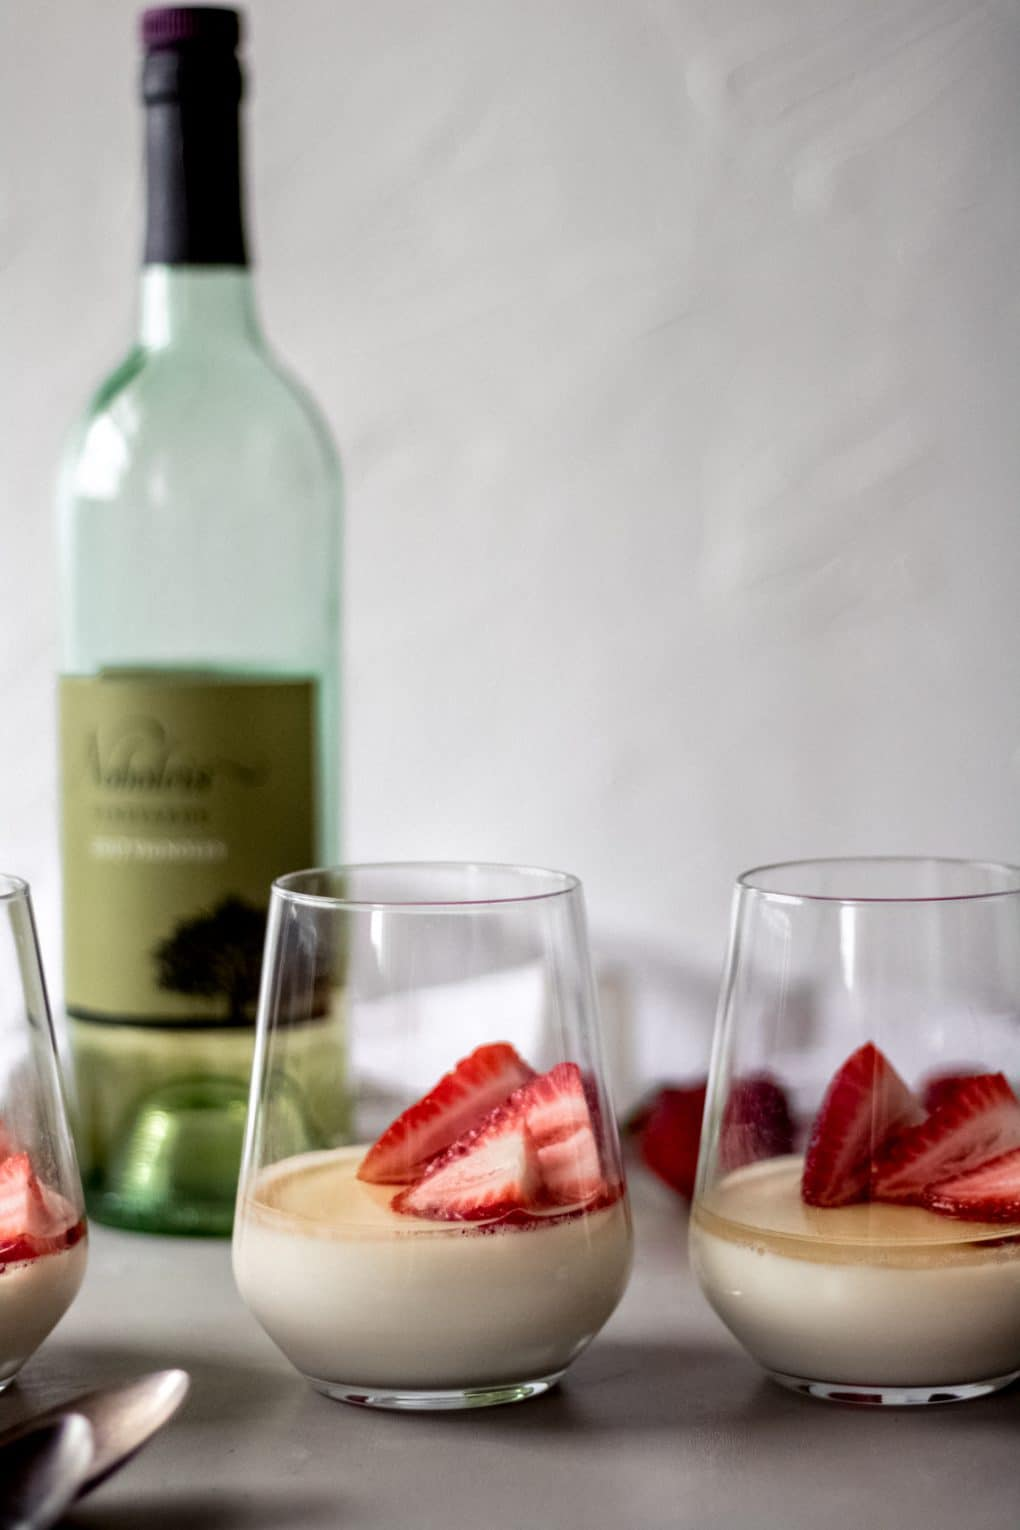 three glasses of vanilla panna cotta with white wine sauce with fresh strawberries in each glass. There's a bottle of white wine in the background and spoons laying in front of the glasses.